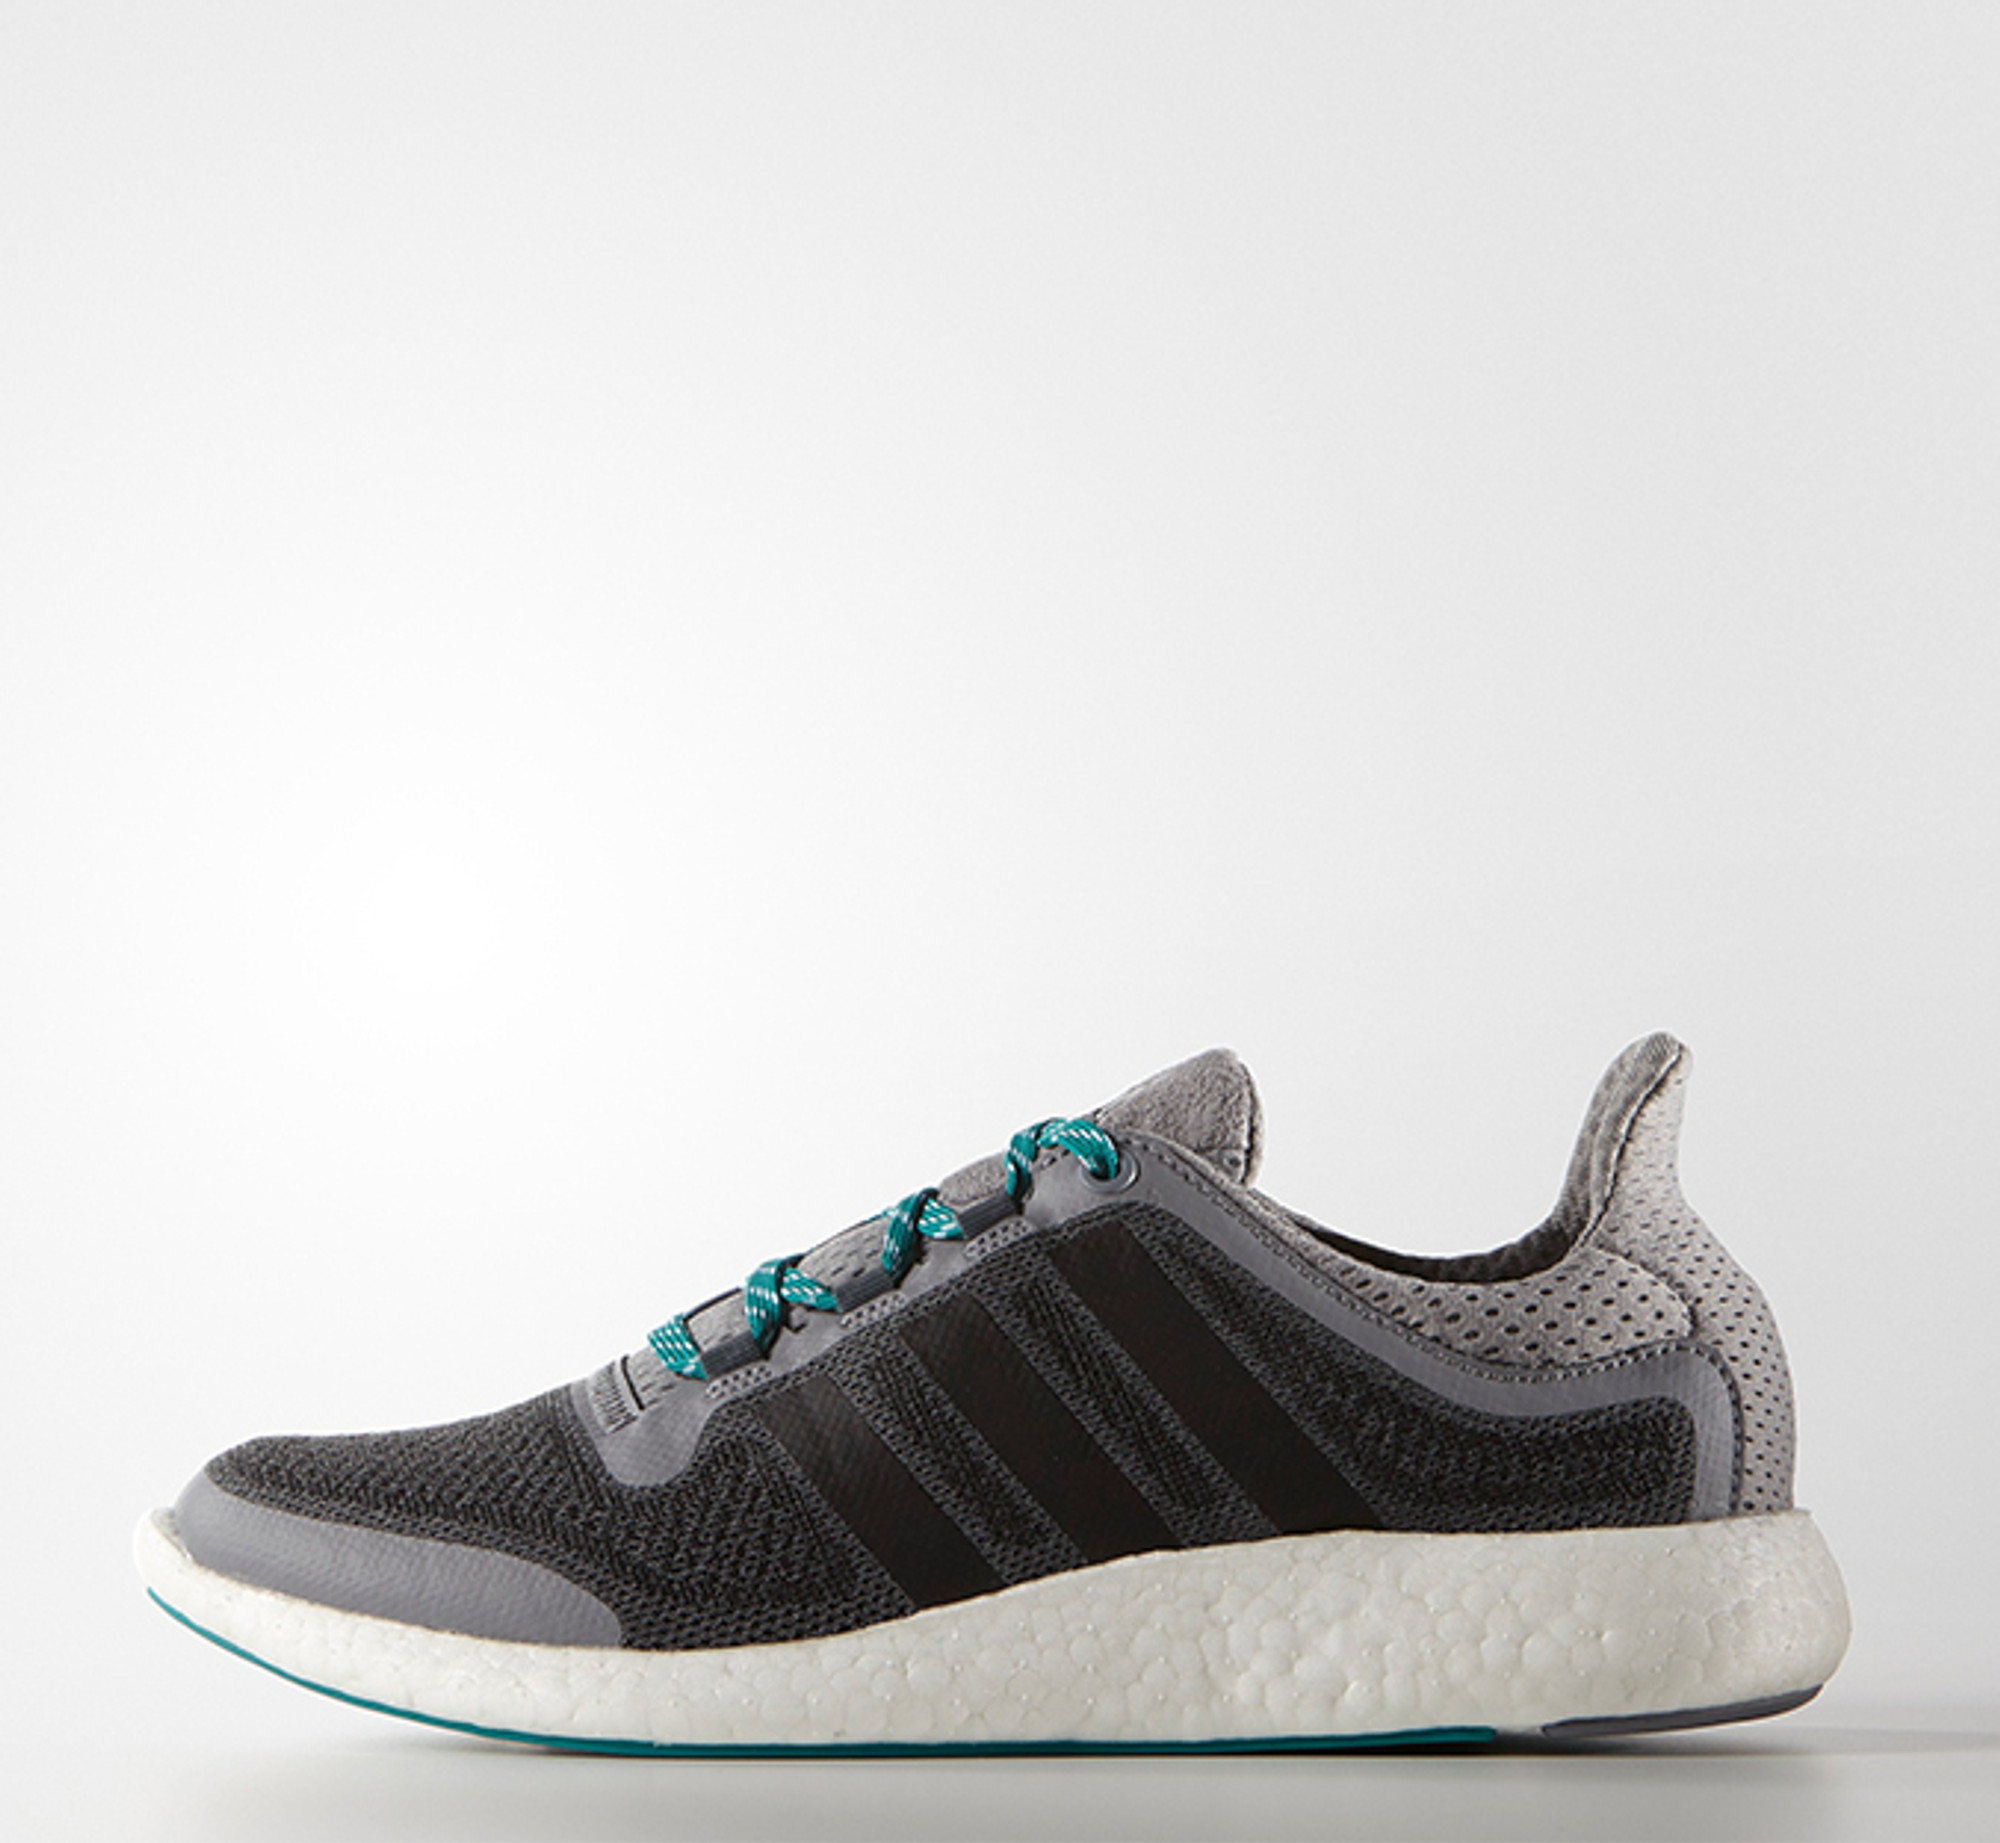 detailing famous brand quality products adidas Pureboost 2 AQ4440